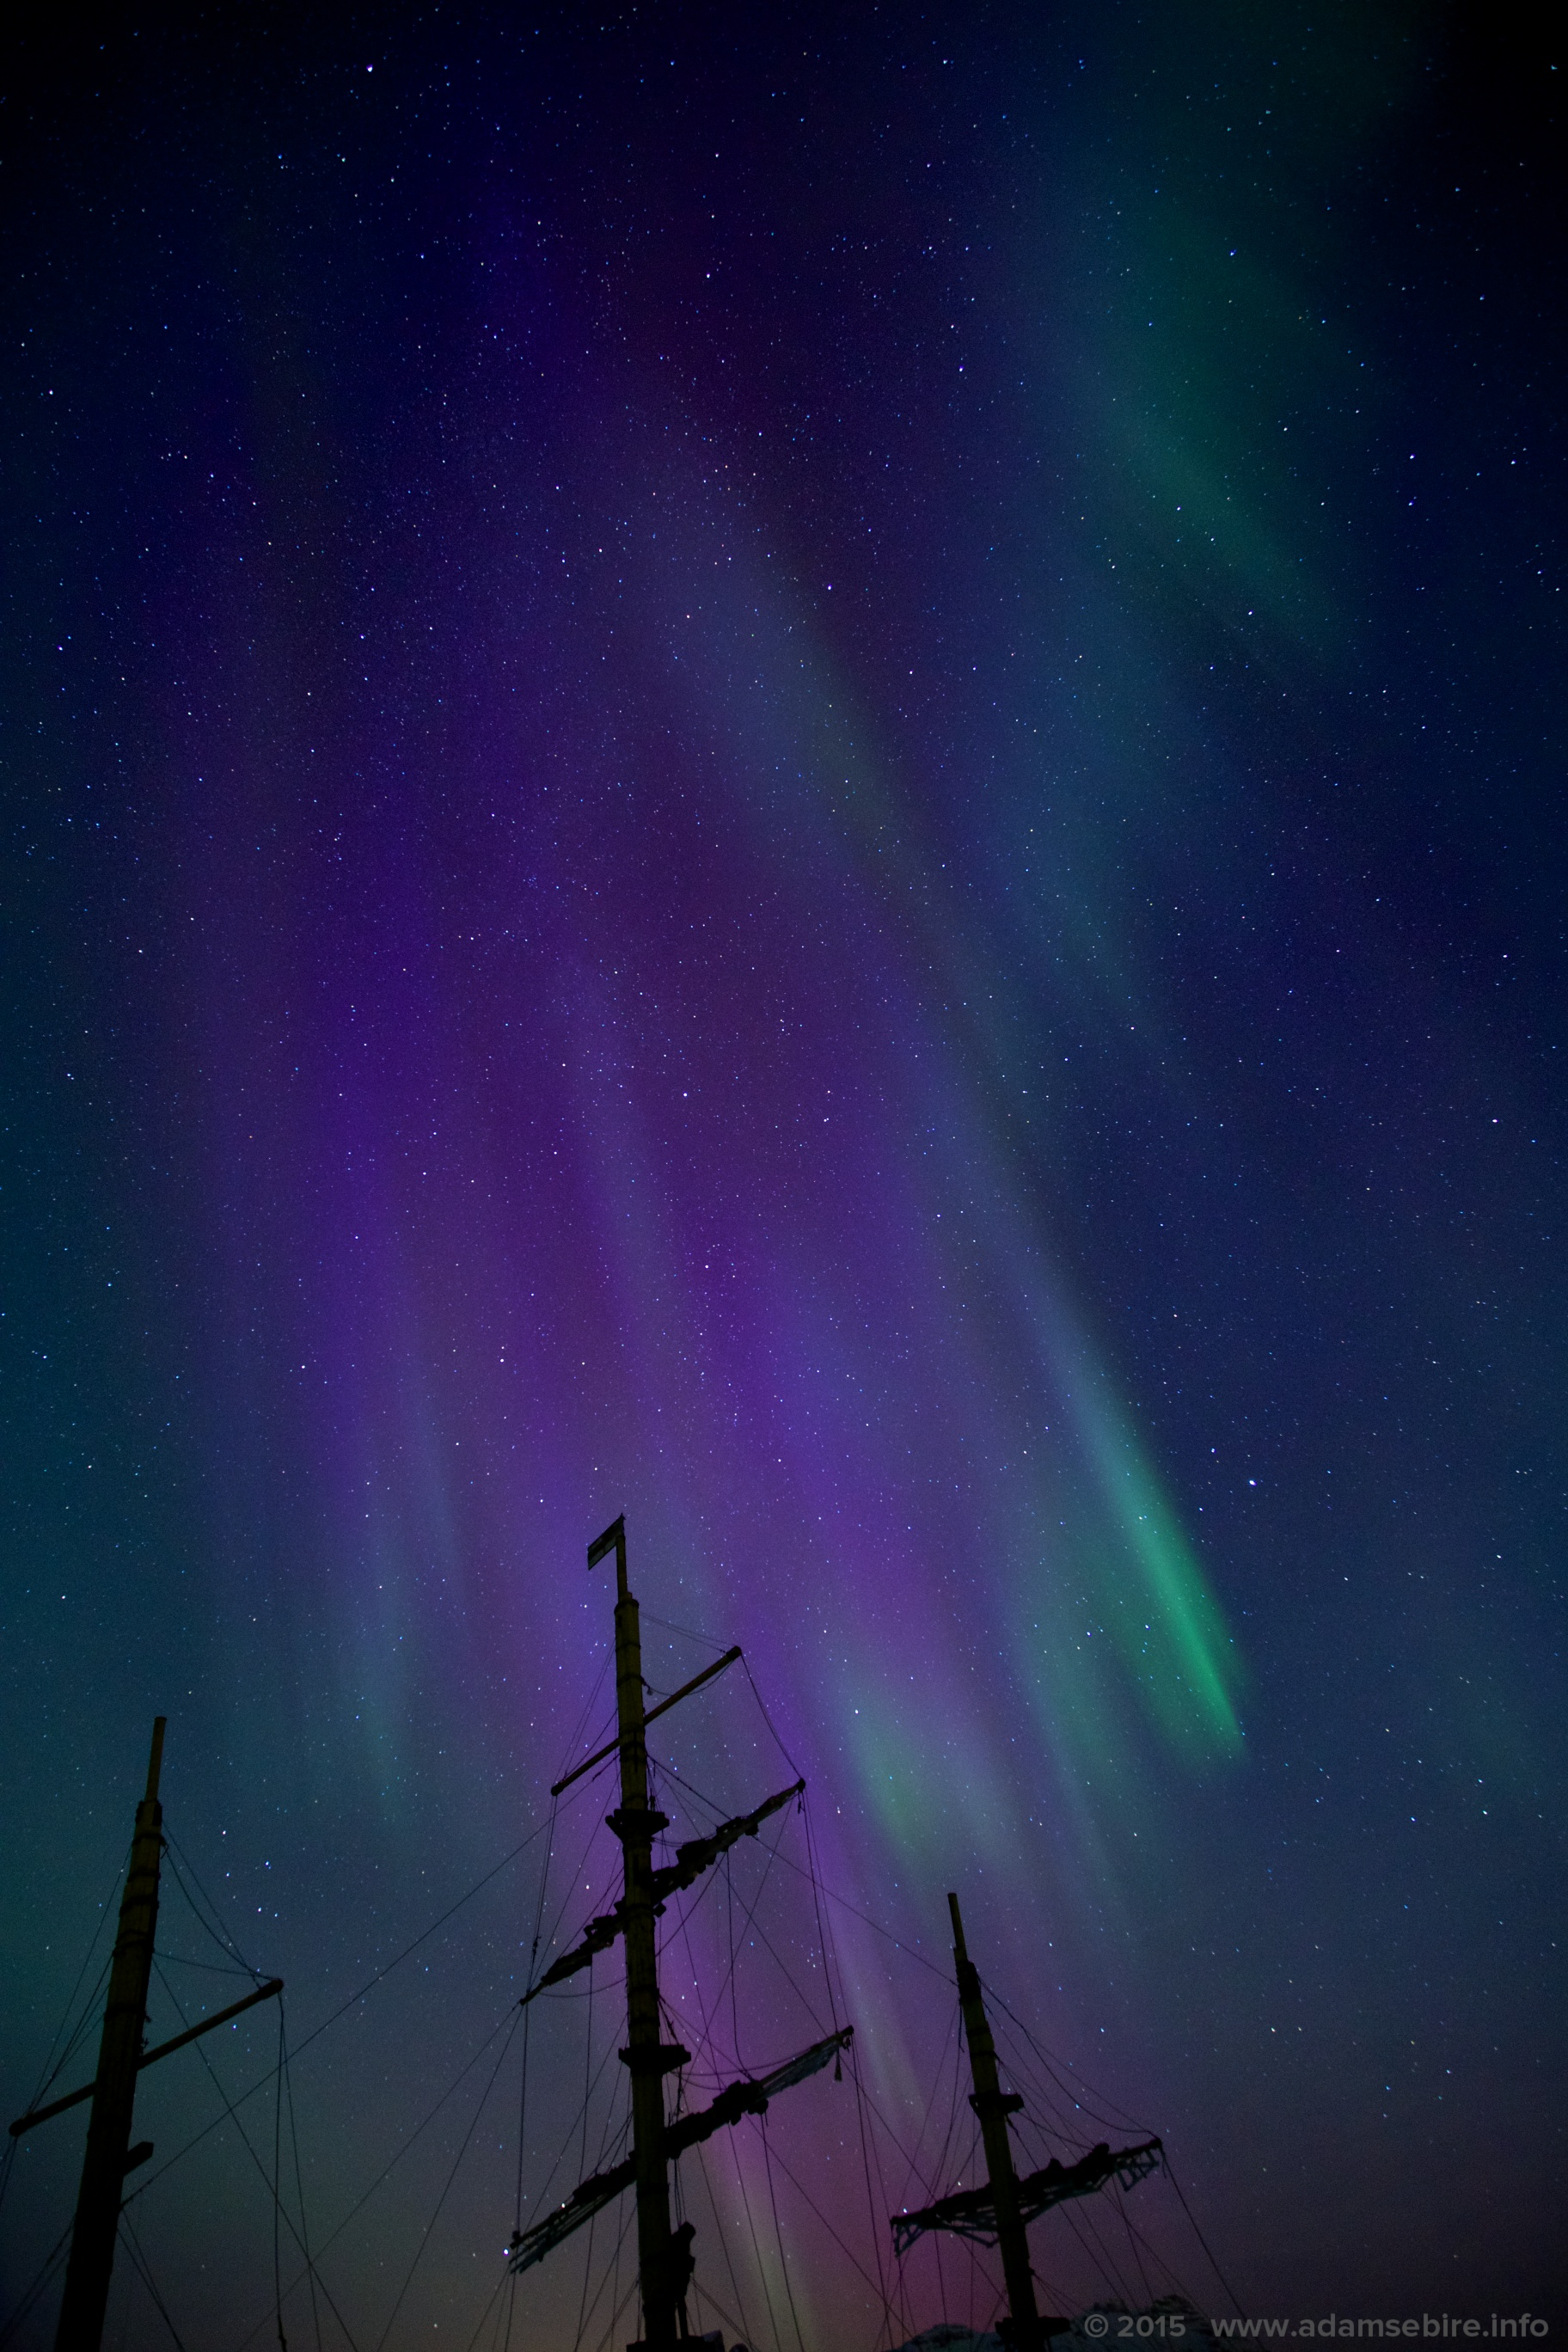 Violet aurora borealis due to ionised nitrogen over ship's masts in Arctic Norway